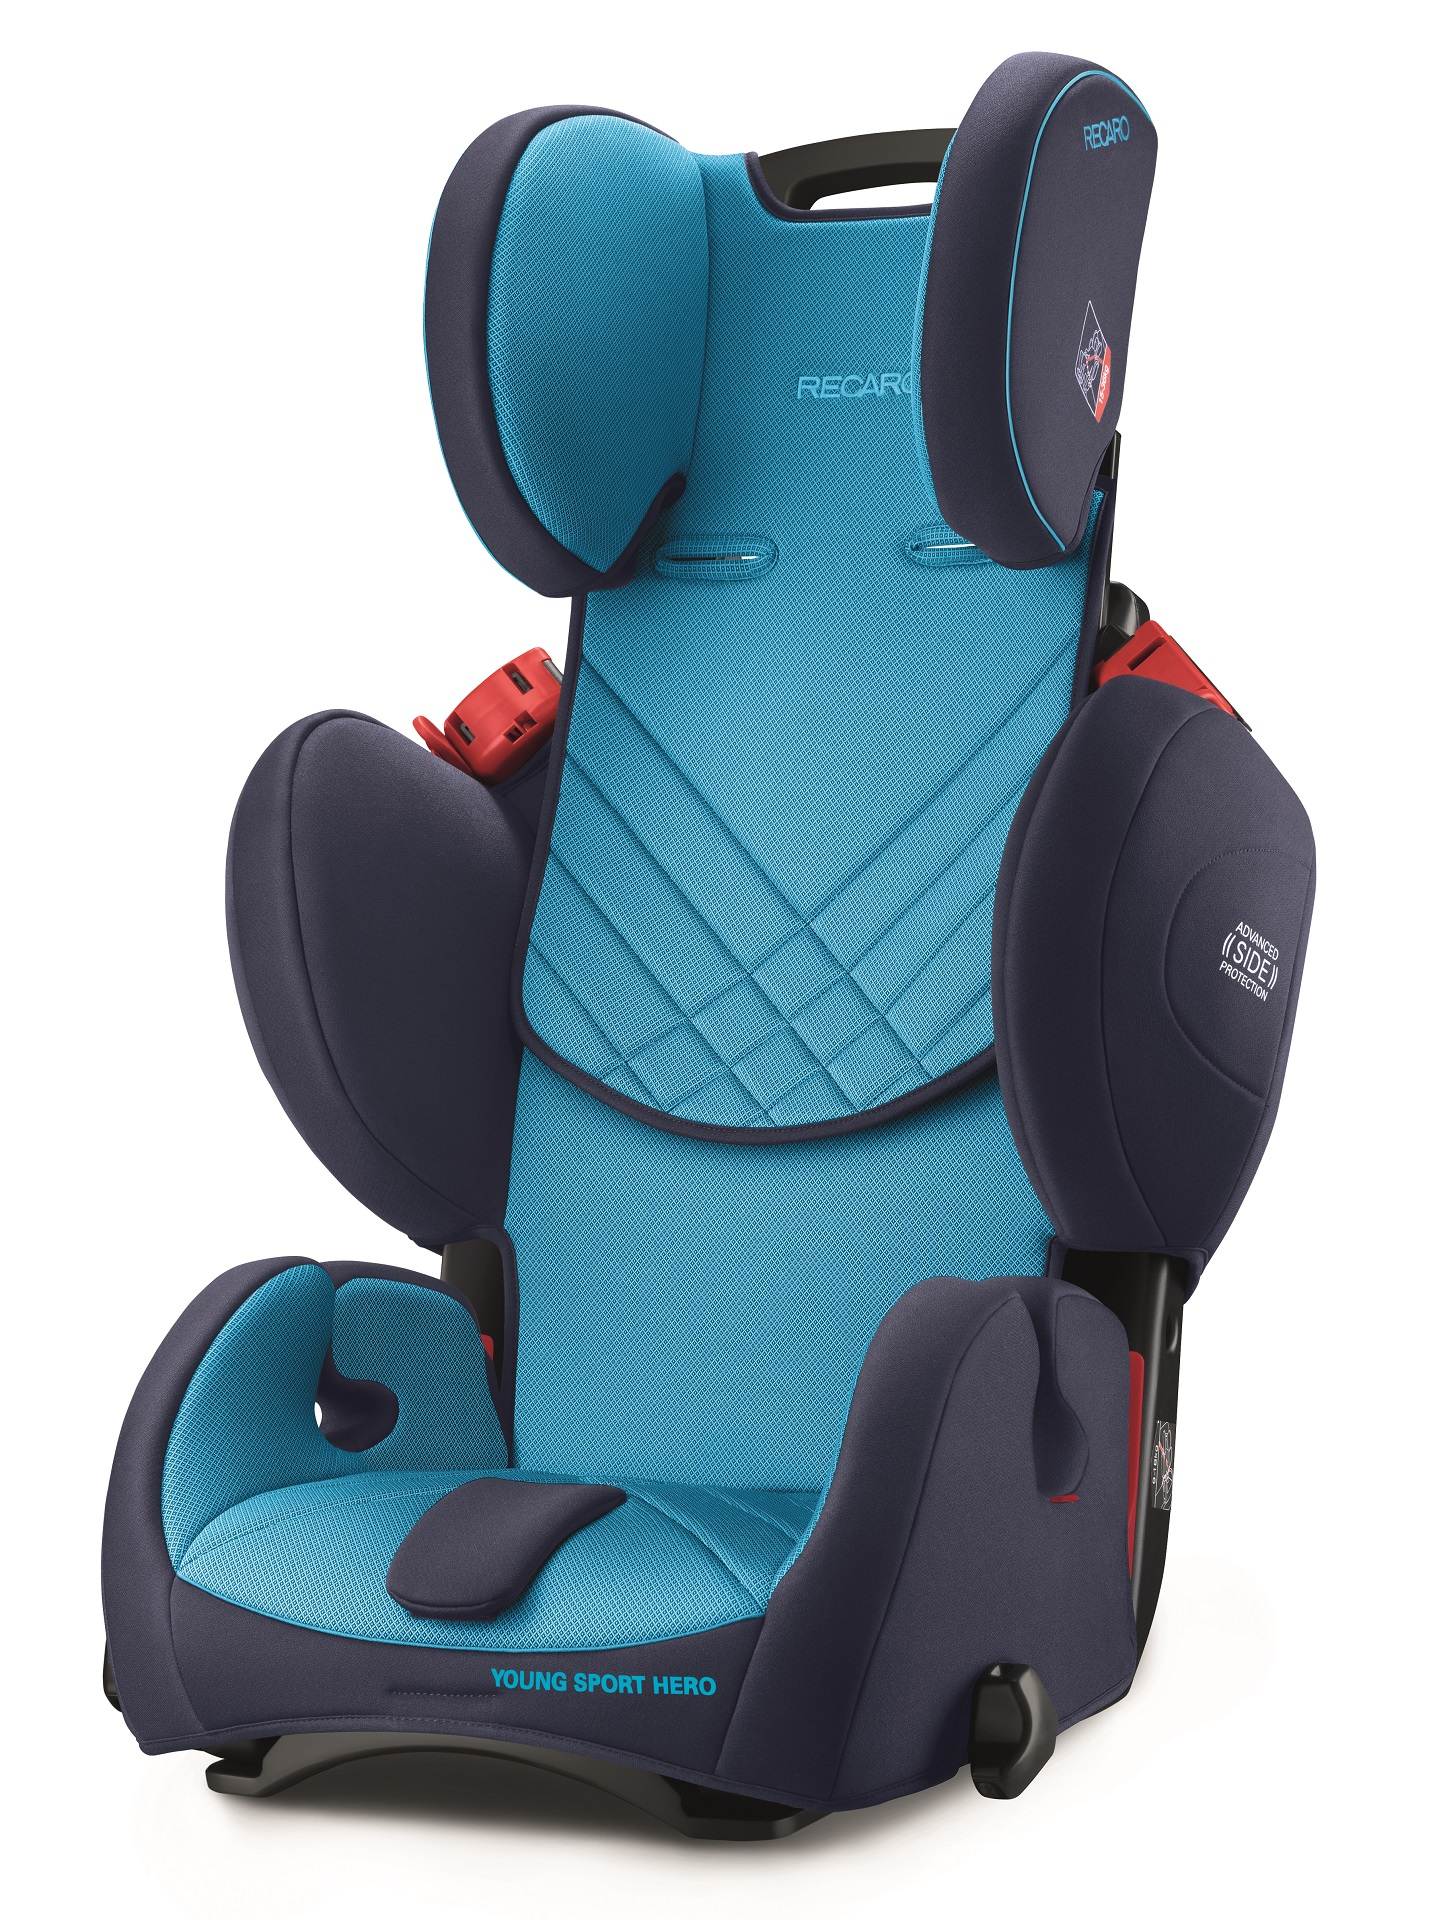 recaro child car seat young sport hero 2018 xenon blue buy at kidsroom car seats. Black Bedroom Furniture Sets. Home Design Ideas